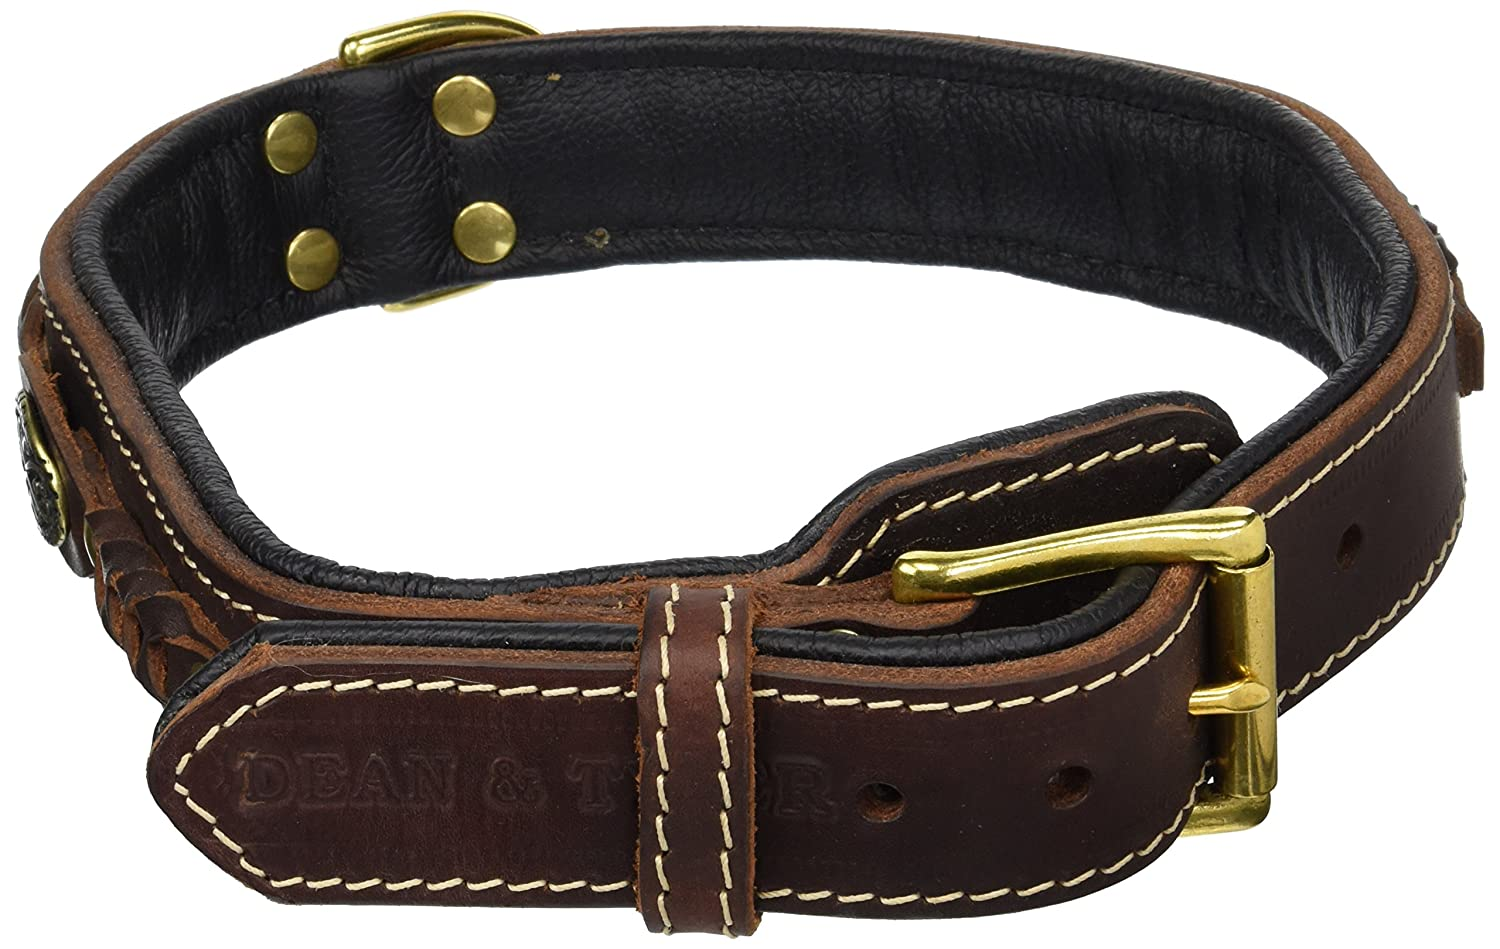 Dean and Tyler DEAN'S LEGEND , Leather Dog Collar with Black Nappa Lining and Brass Hardware Brown Size 26  by 1-1 2  Fits Neck 24  to 28